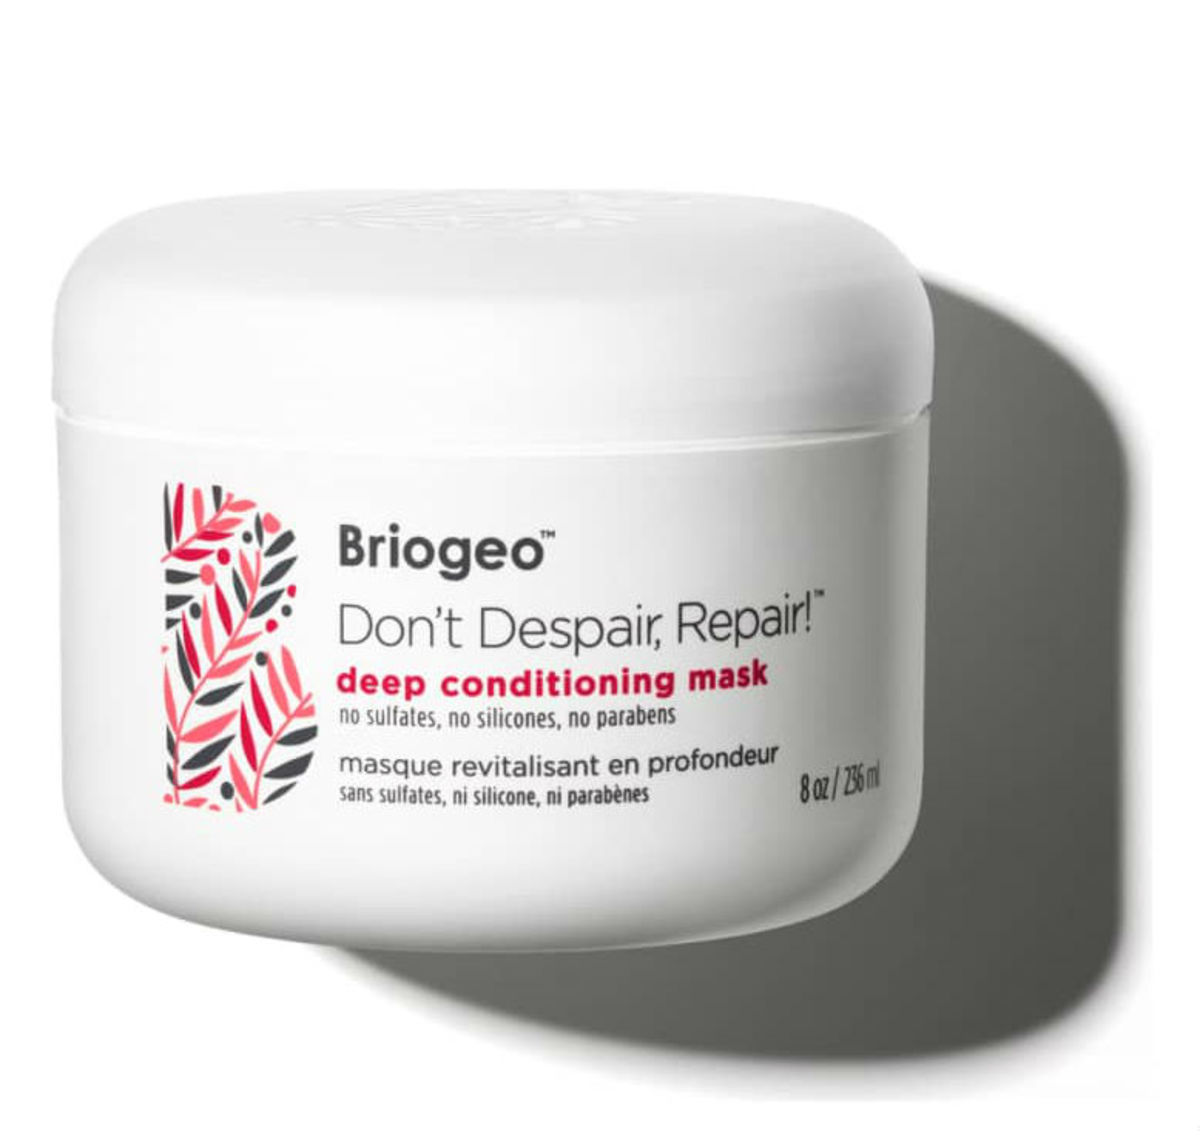 Briogeo Don't Despair, Repair! Deep Conditioning Mask, $36, available here.